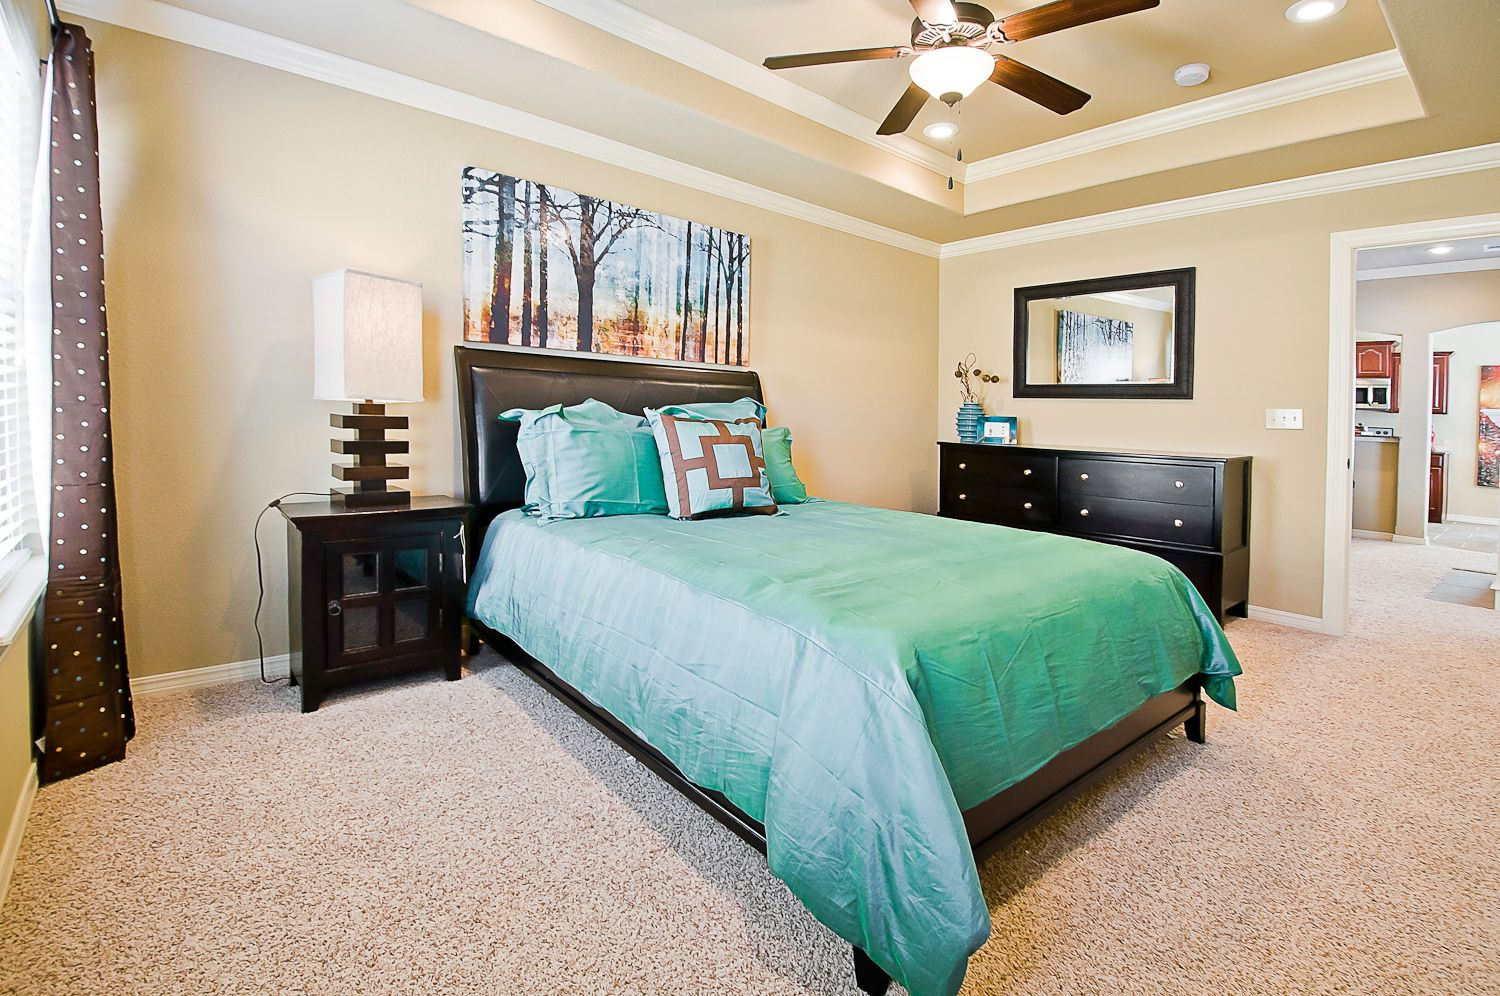 Bedroom featured in the 1408 By Riverwood Homes - Arkansas in Fayetteville, AR